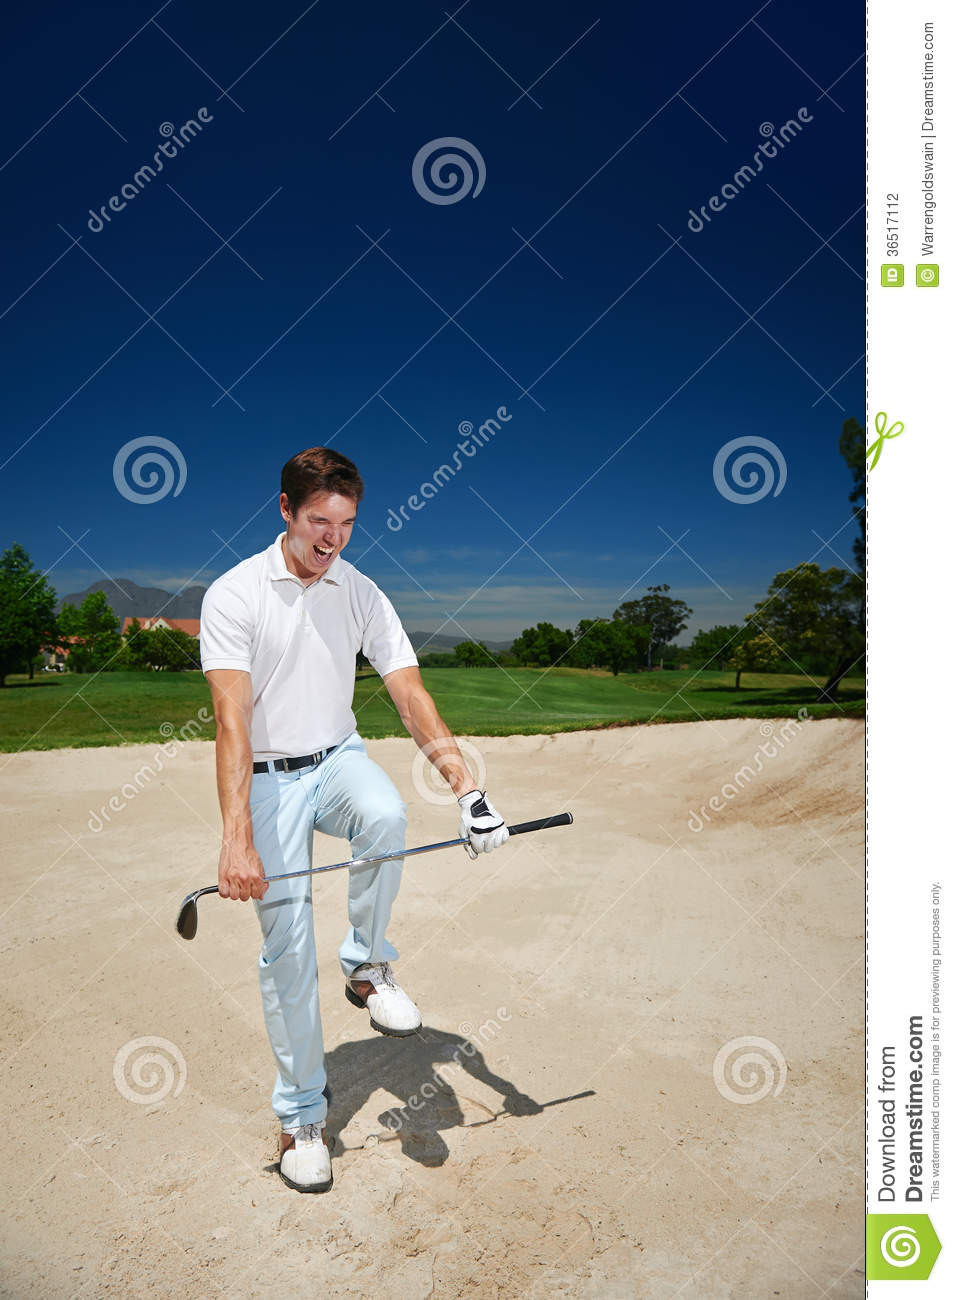 Frustrated golf